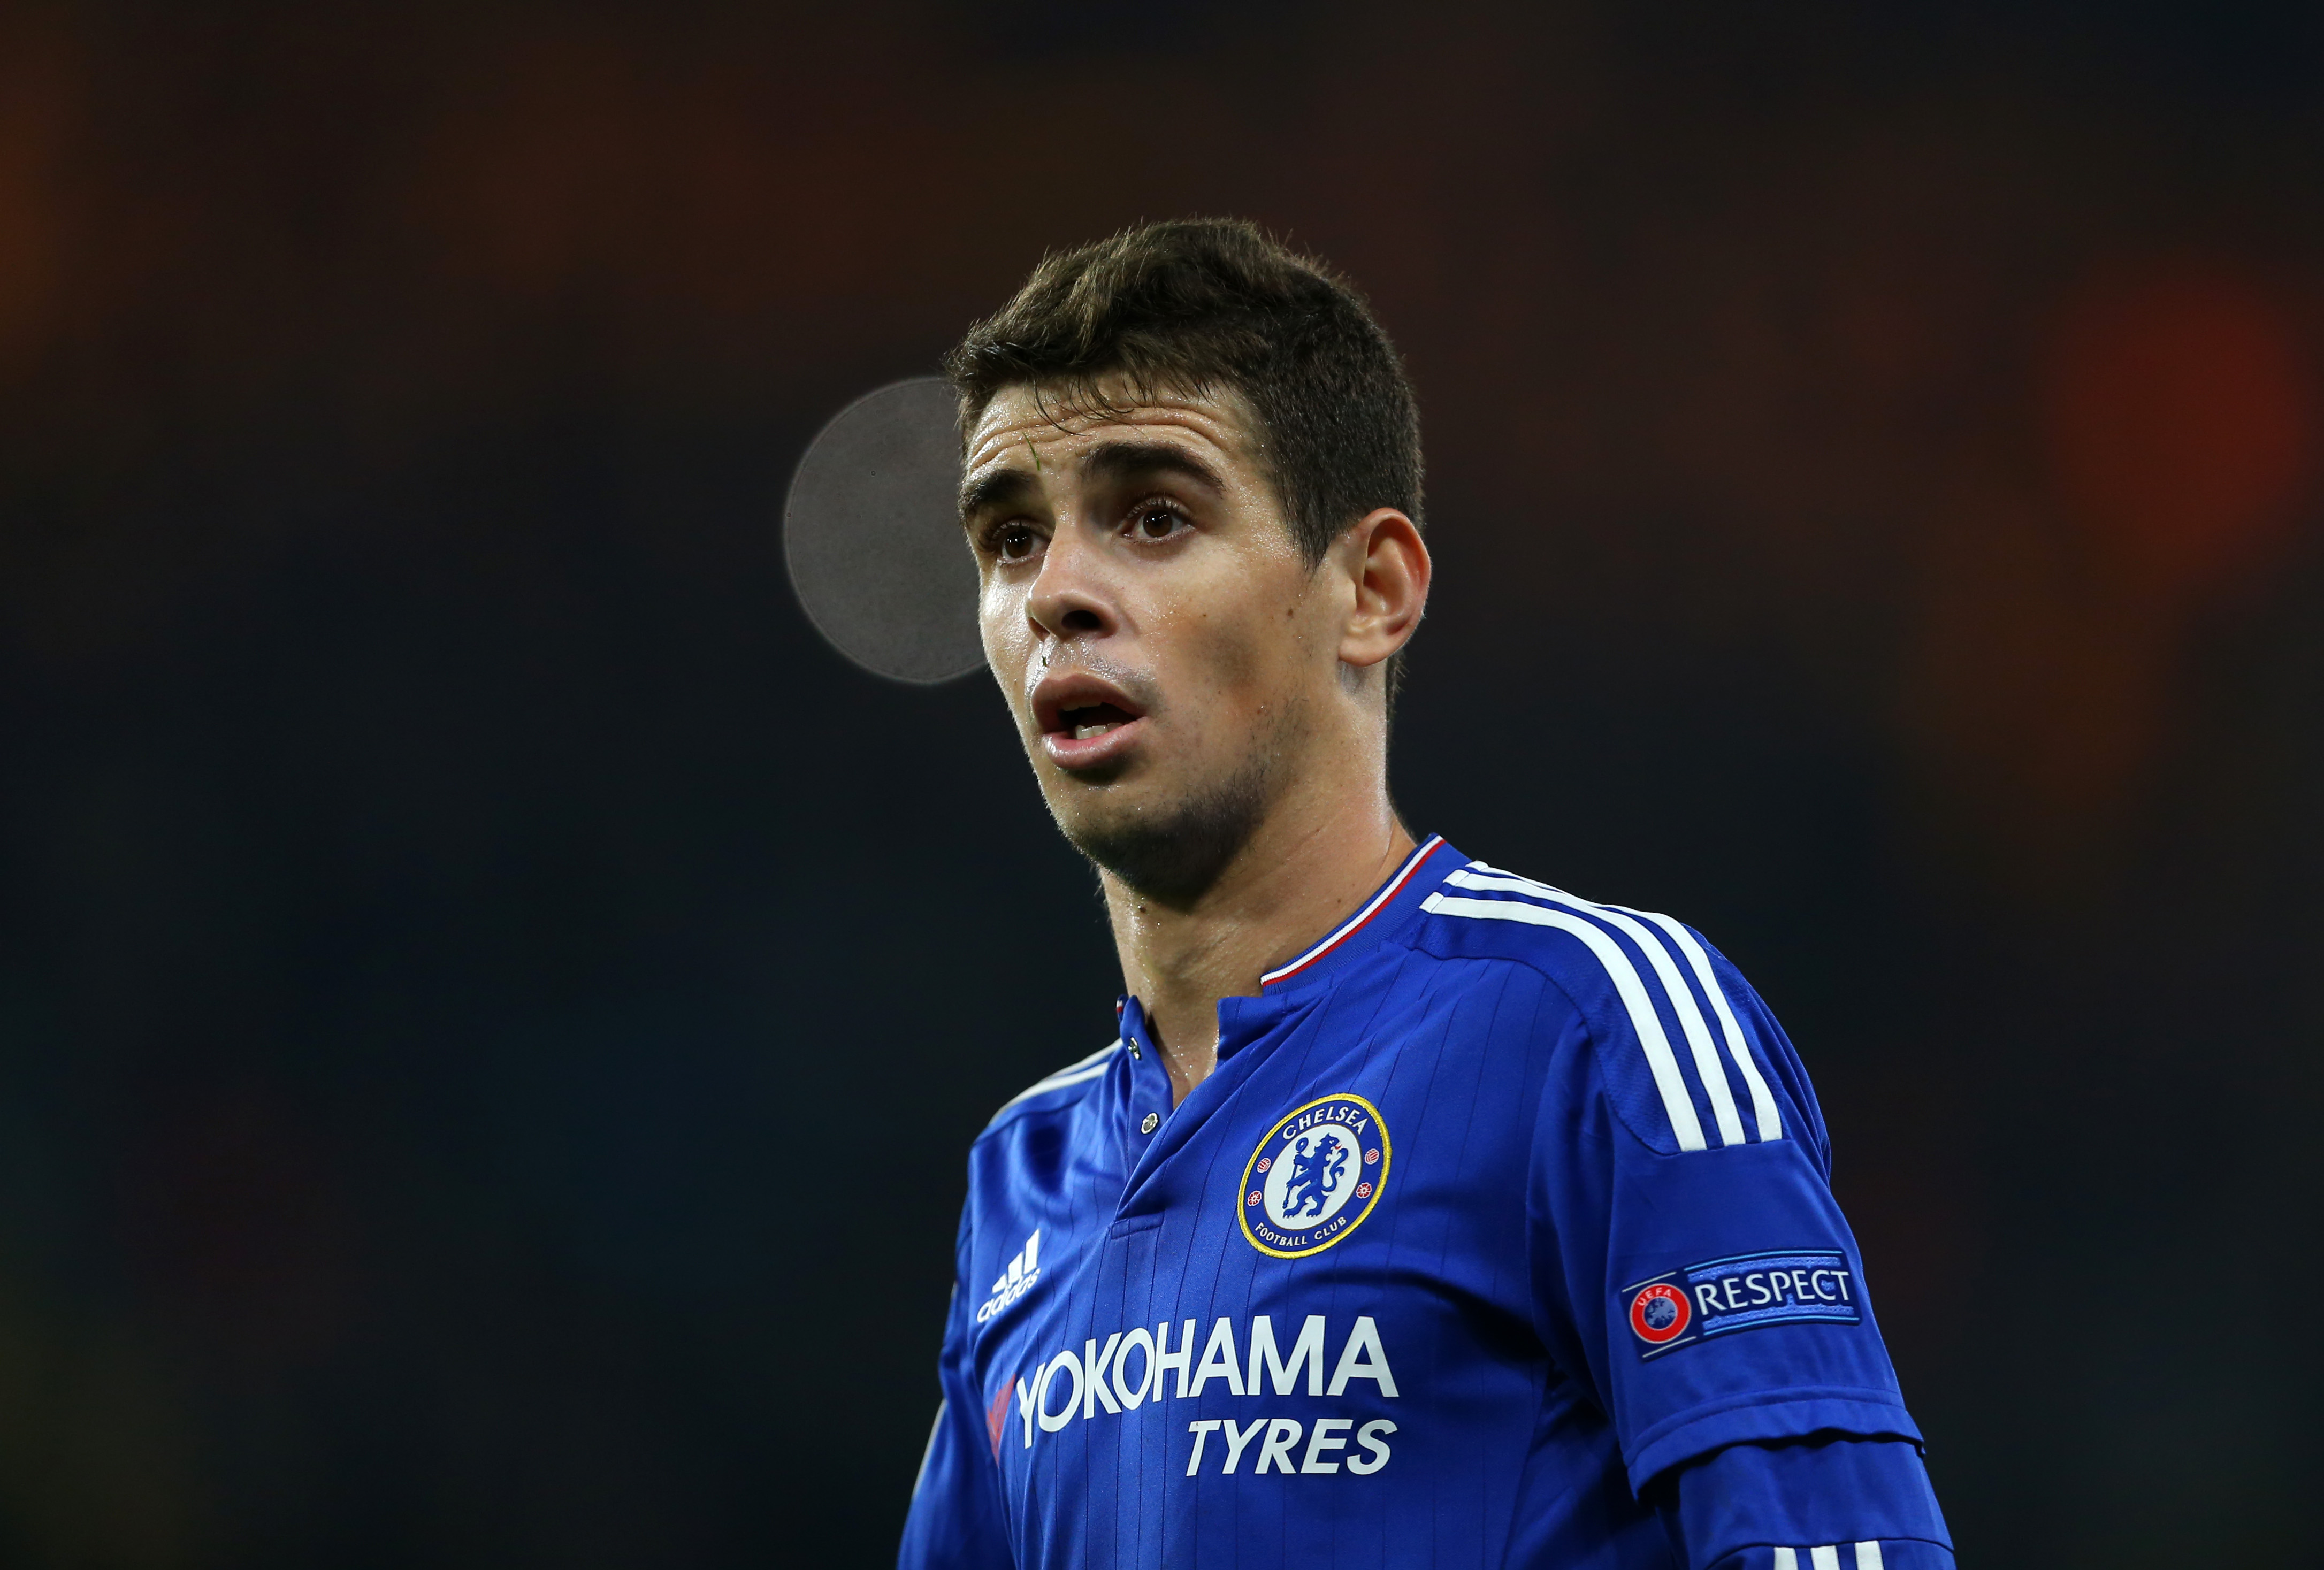 Shanghai SIPG are spending £52m on Chelsea midfielder Oscar… but they don't actually want him